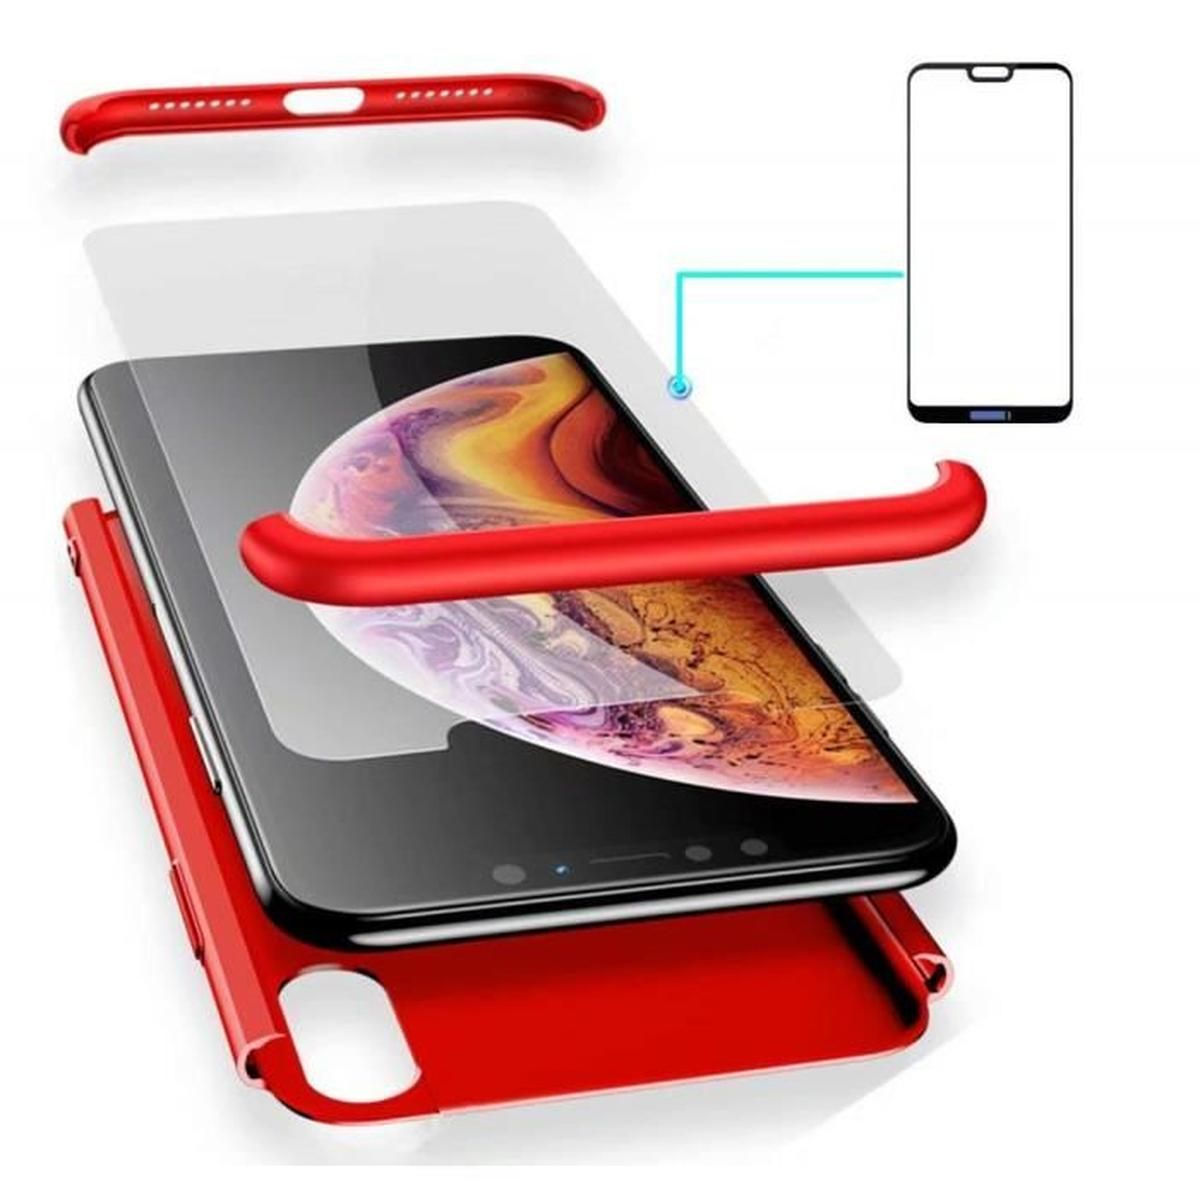 Cdiscount Smartphone Frais Coque Huawei P20 Lite étui 360 Degrés Housse Pc Hard Shell Anti Choc Full Cover Case Scratch De Verre Trempé Rouge Of 32 Élégant Cdiscount Smartphone